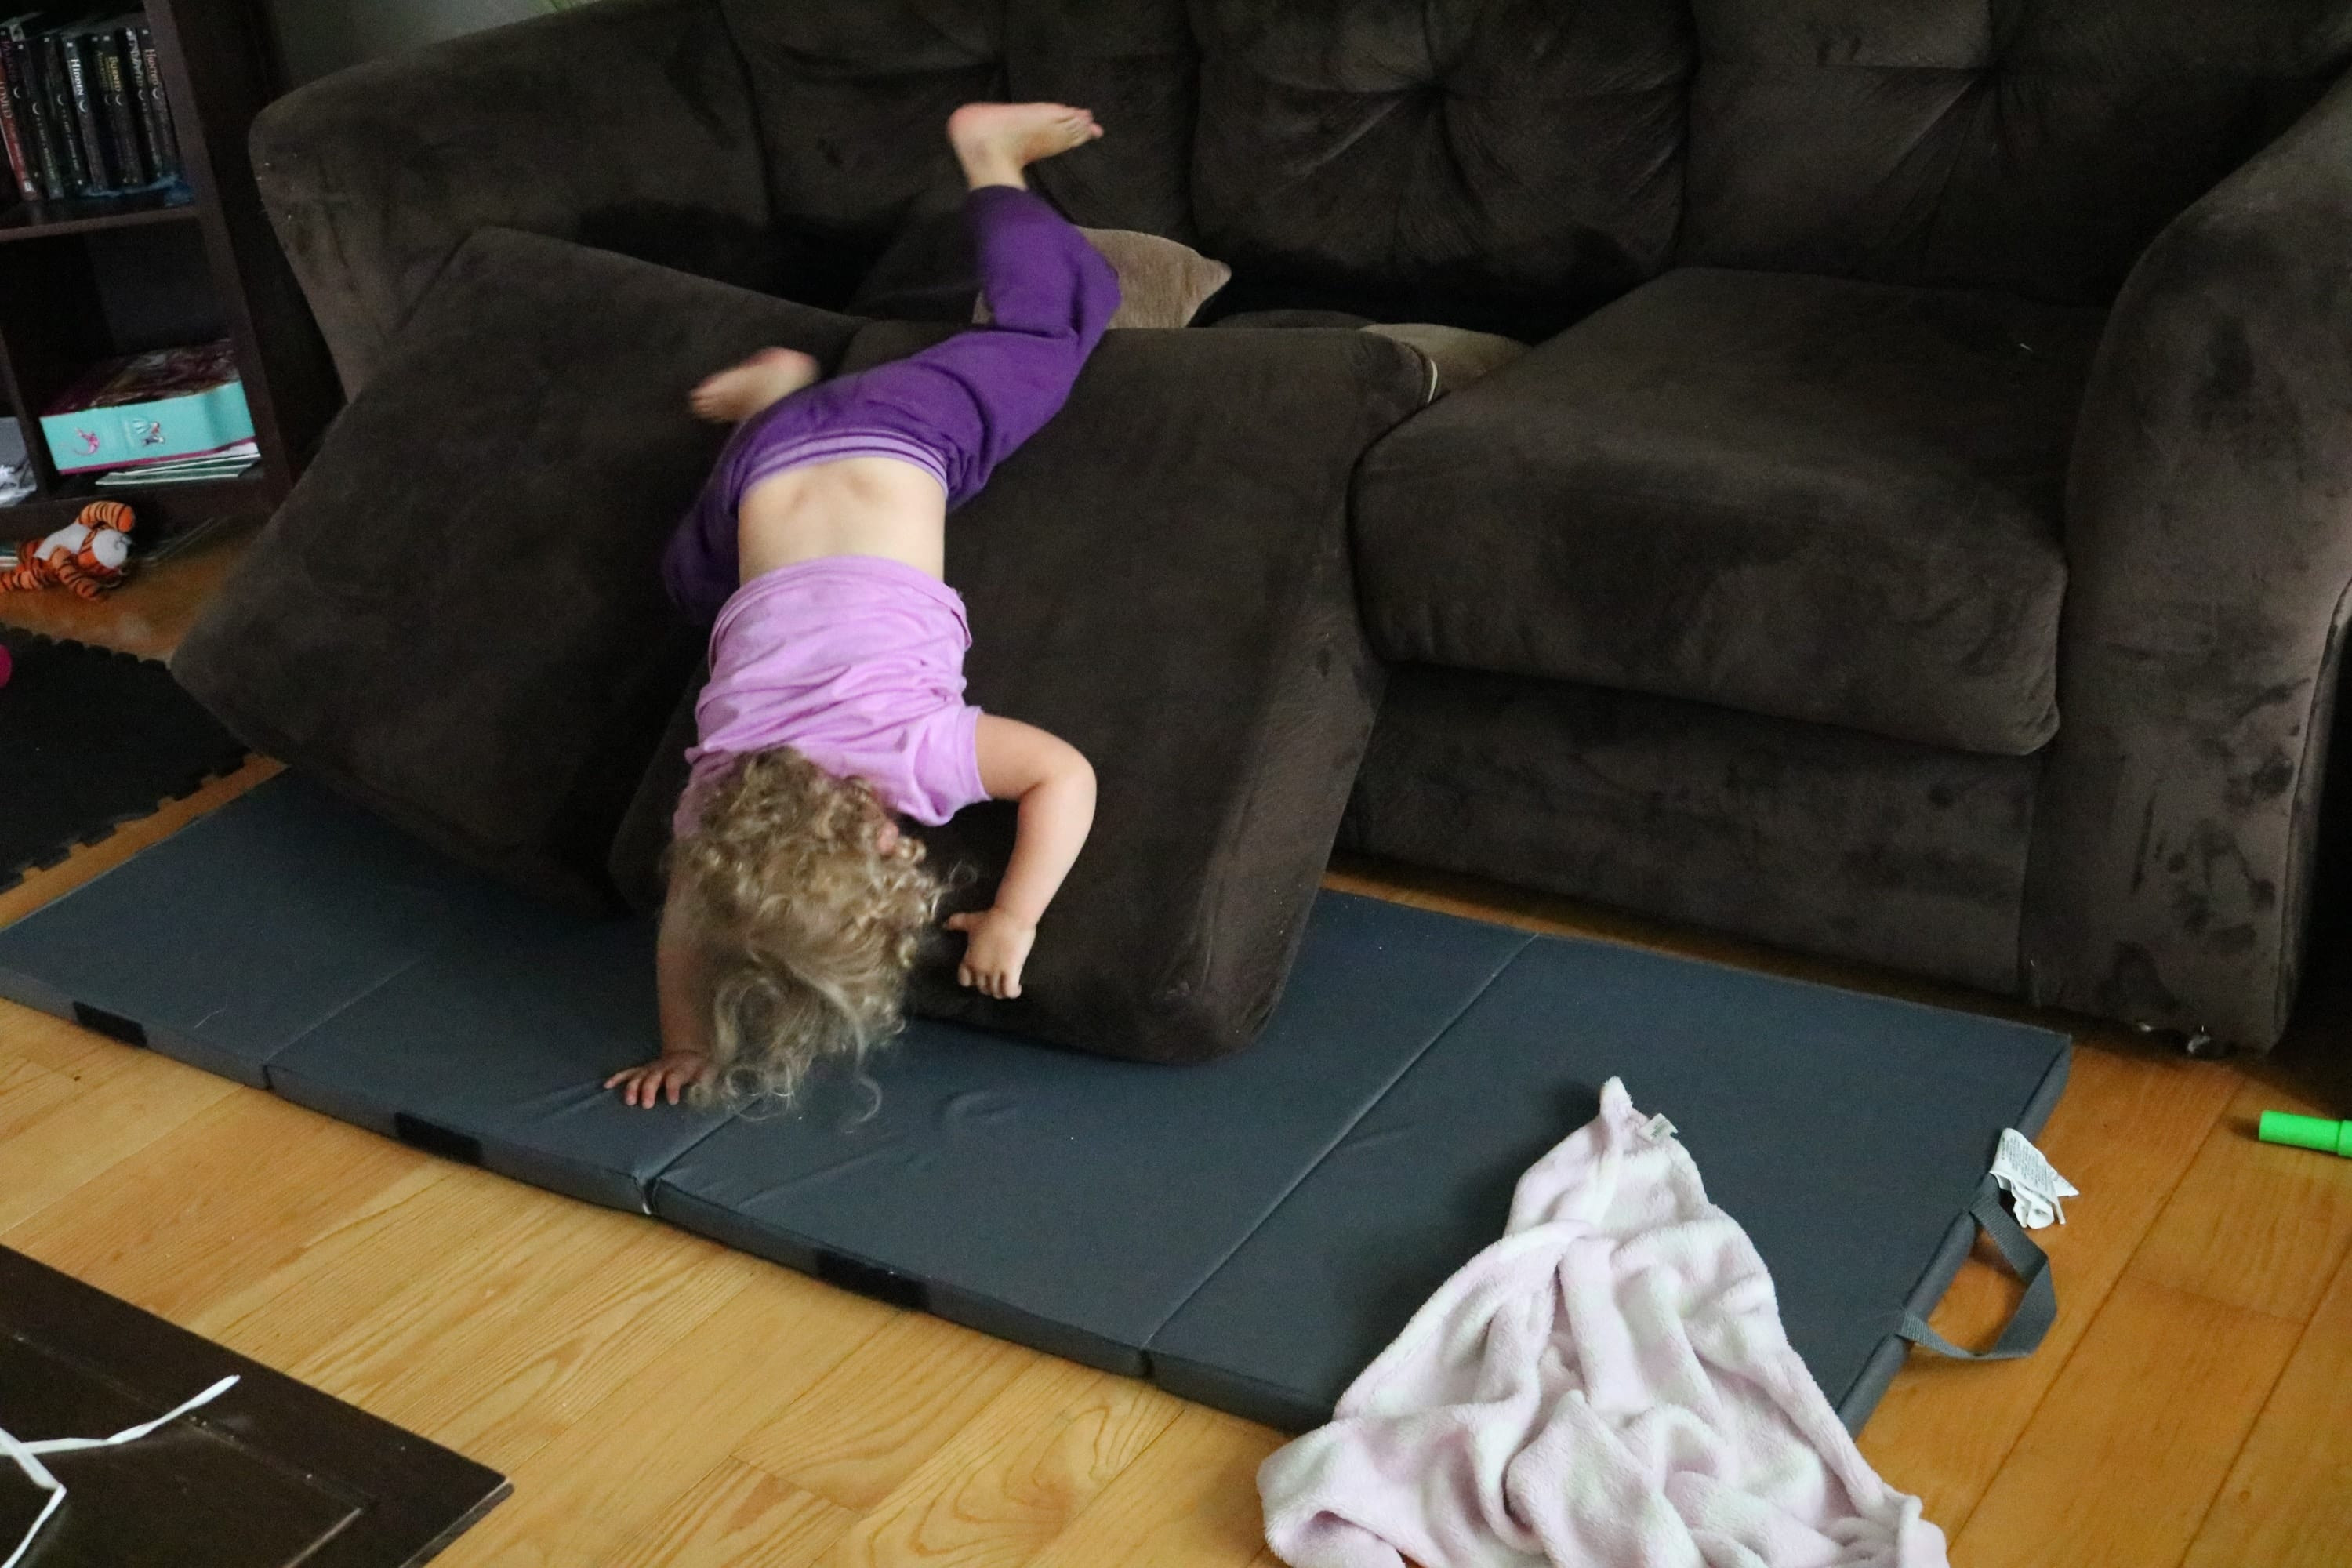 Rainy day game where a toddler is bouncing off couch